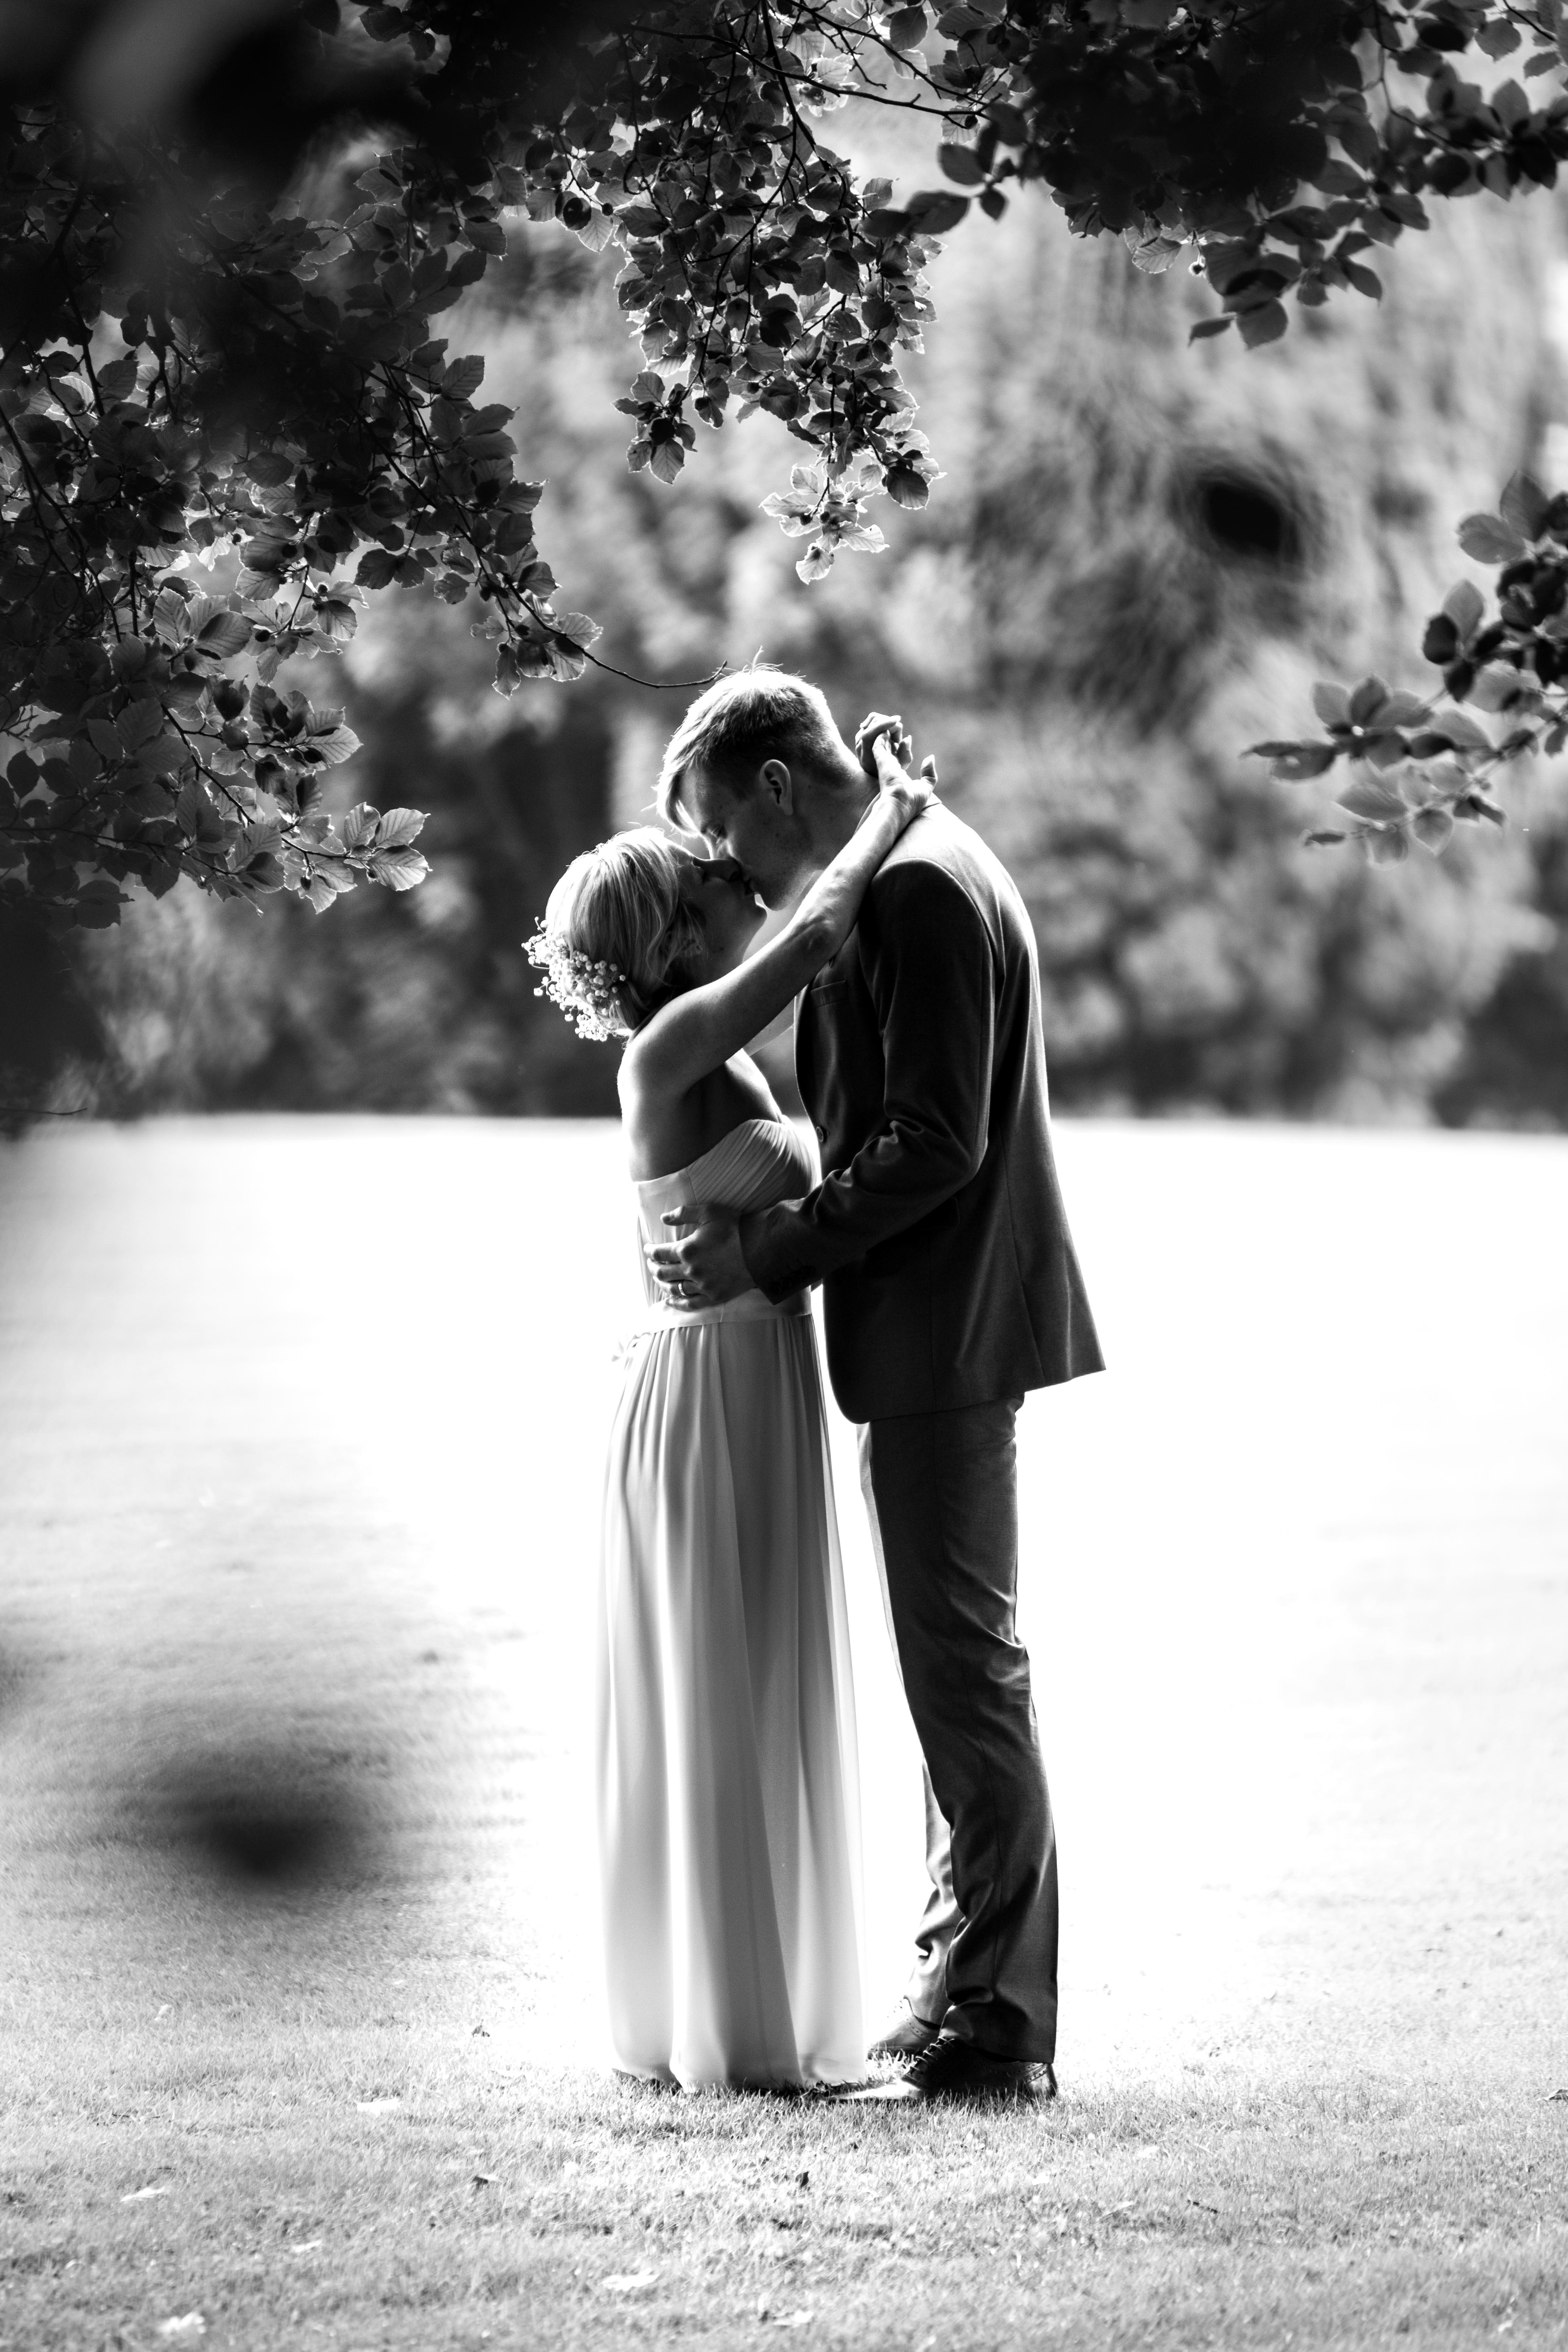 By wedding photographer Jack Cook